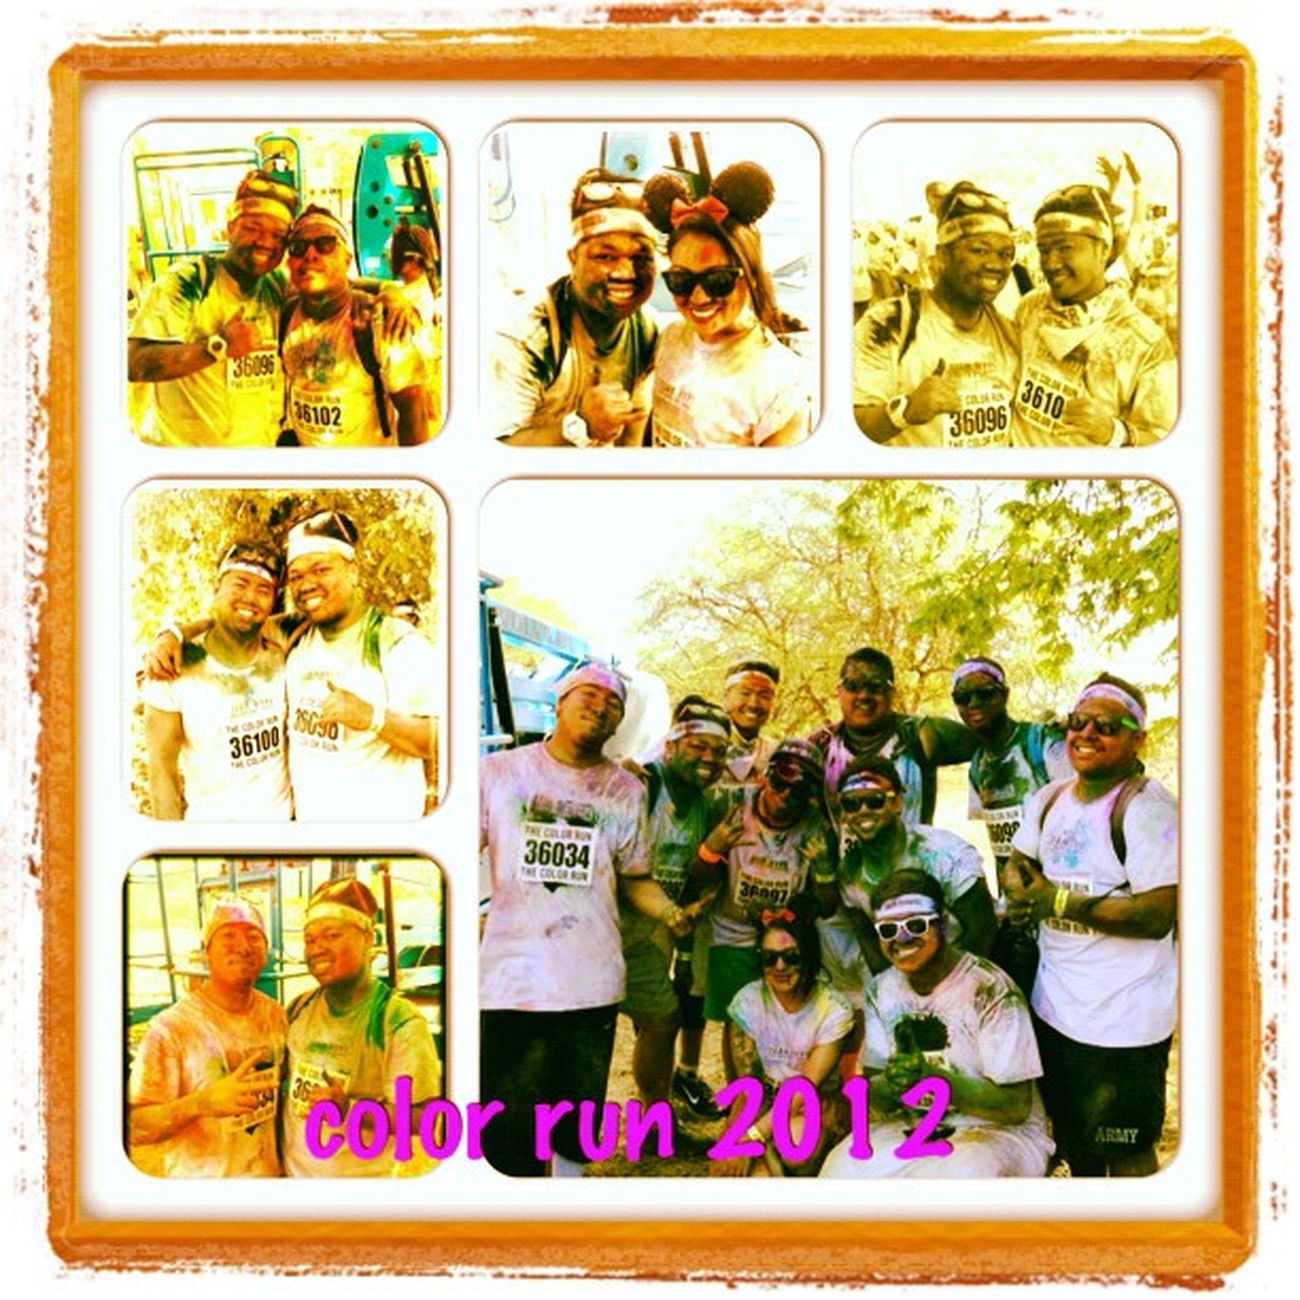 @academyofhype @bfearce @beetunda @carwindow @thegreatmousedetective @hazmathype @acpascual @rangitto @enzodirecto @roblinthegoblin color run 2012. it was a blast ? Colorrun2012 DanceFamily Hs4l Academyofhype